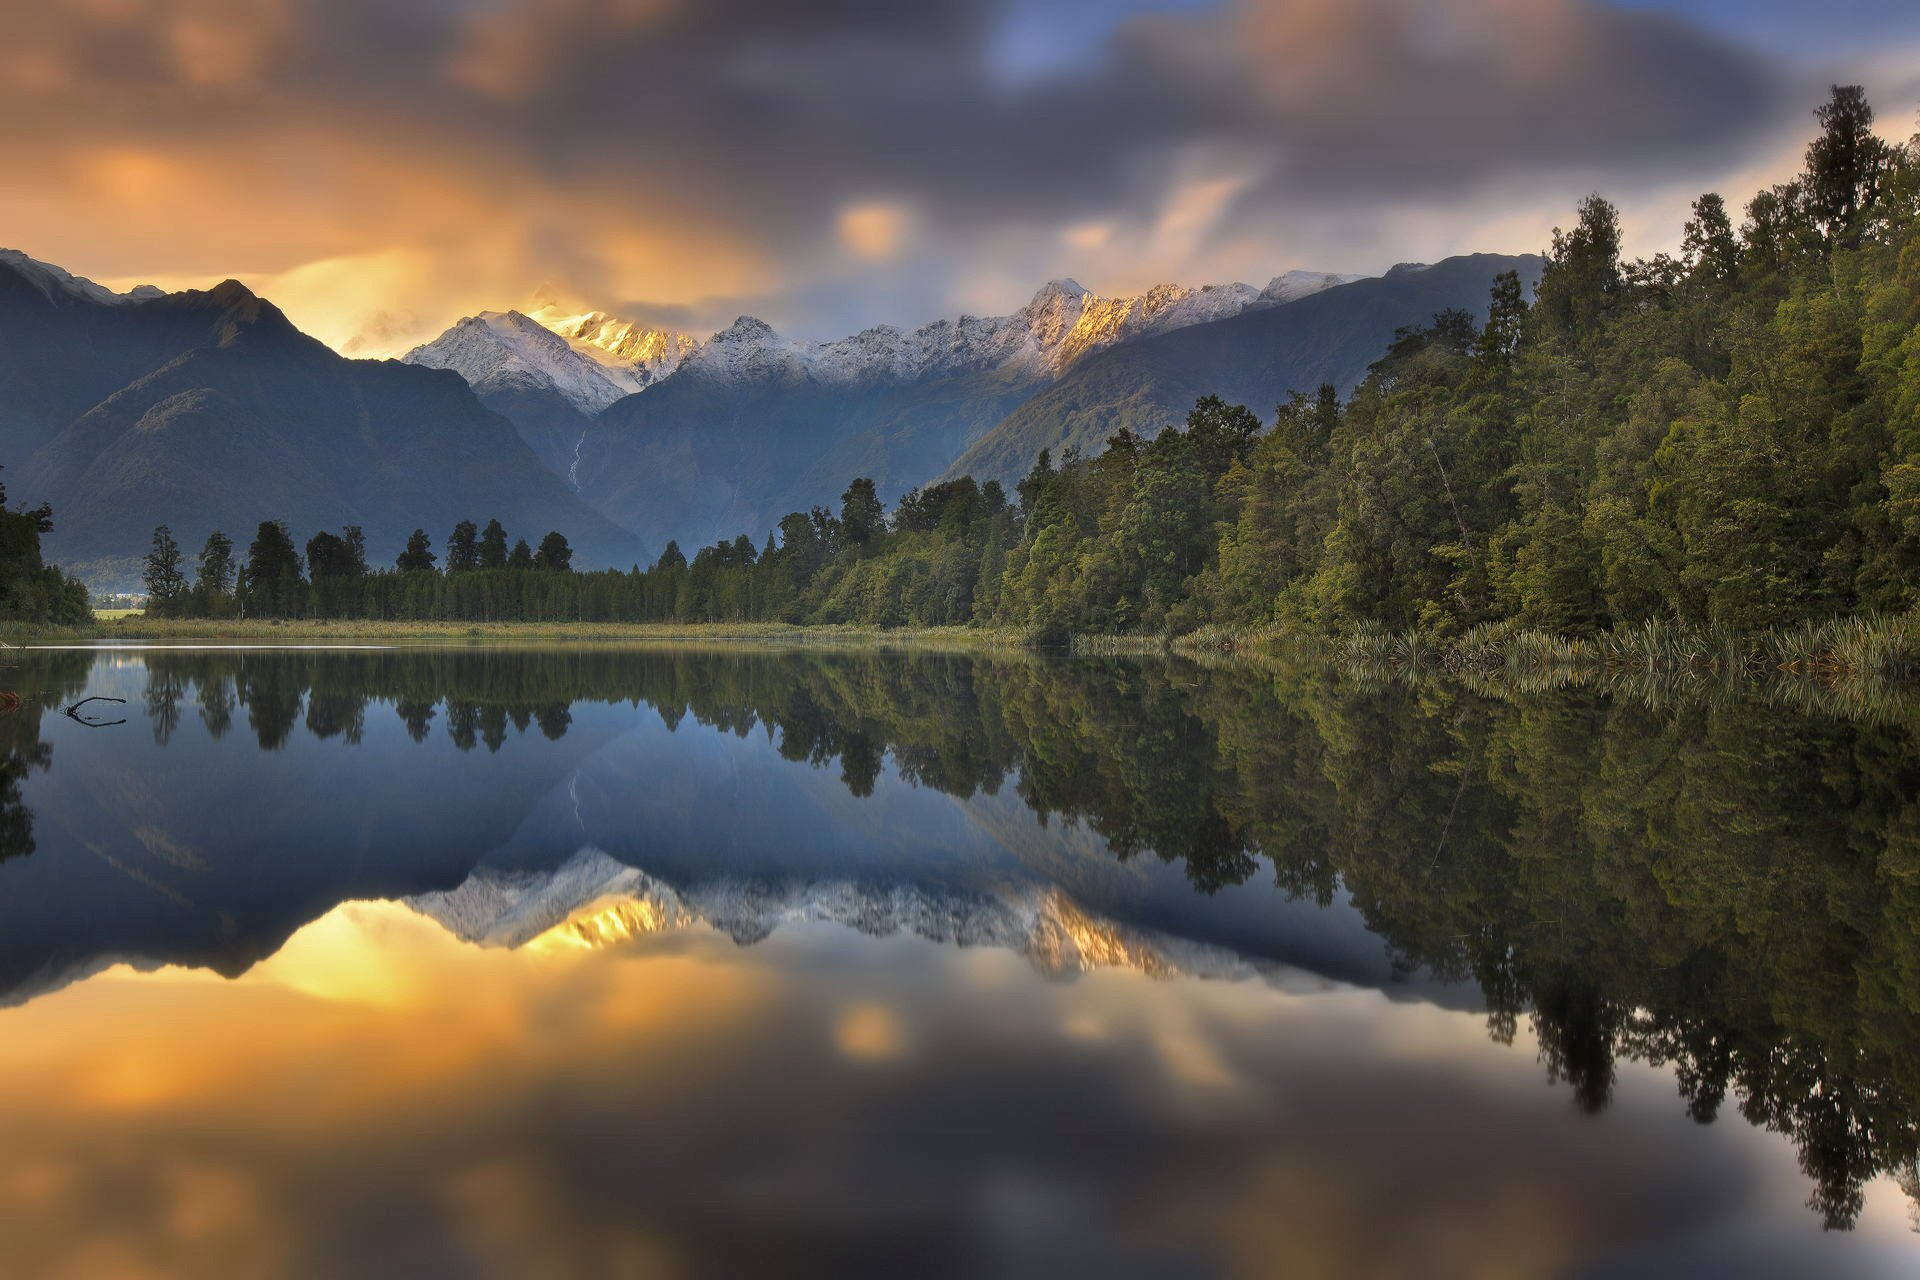 Www Wallpaper Com Free Download Hd Landscape Nature Sunset Mountains Lake Forest Reflection